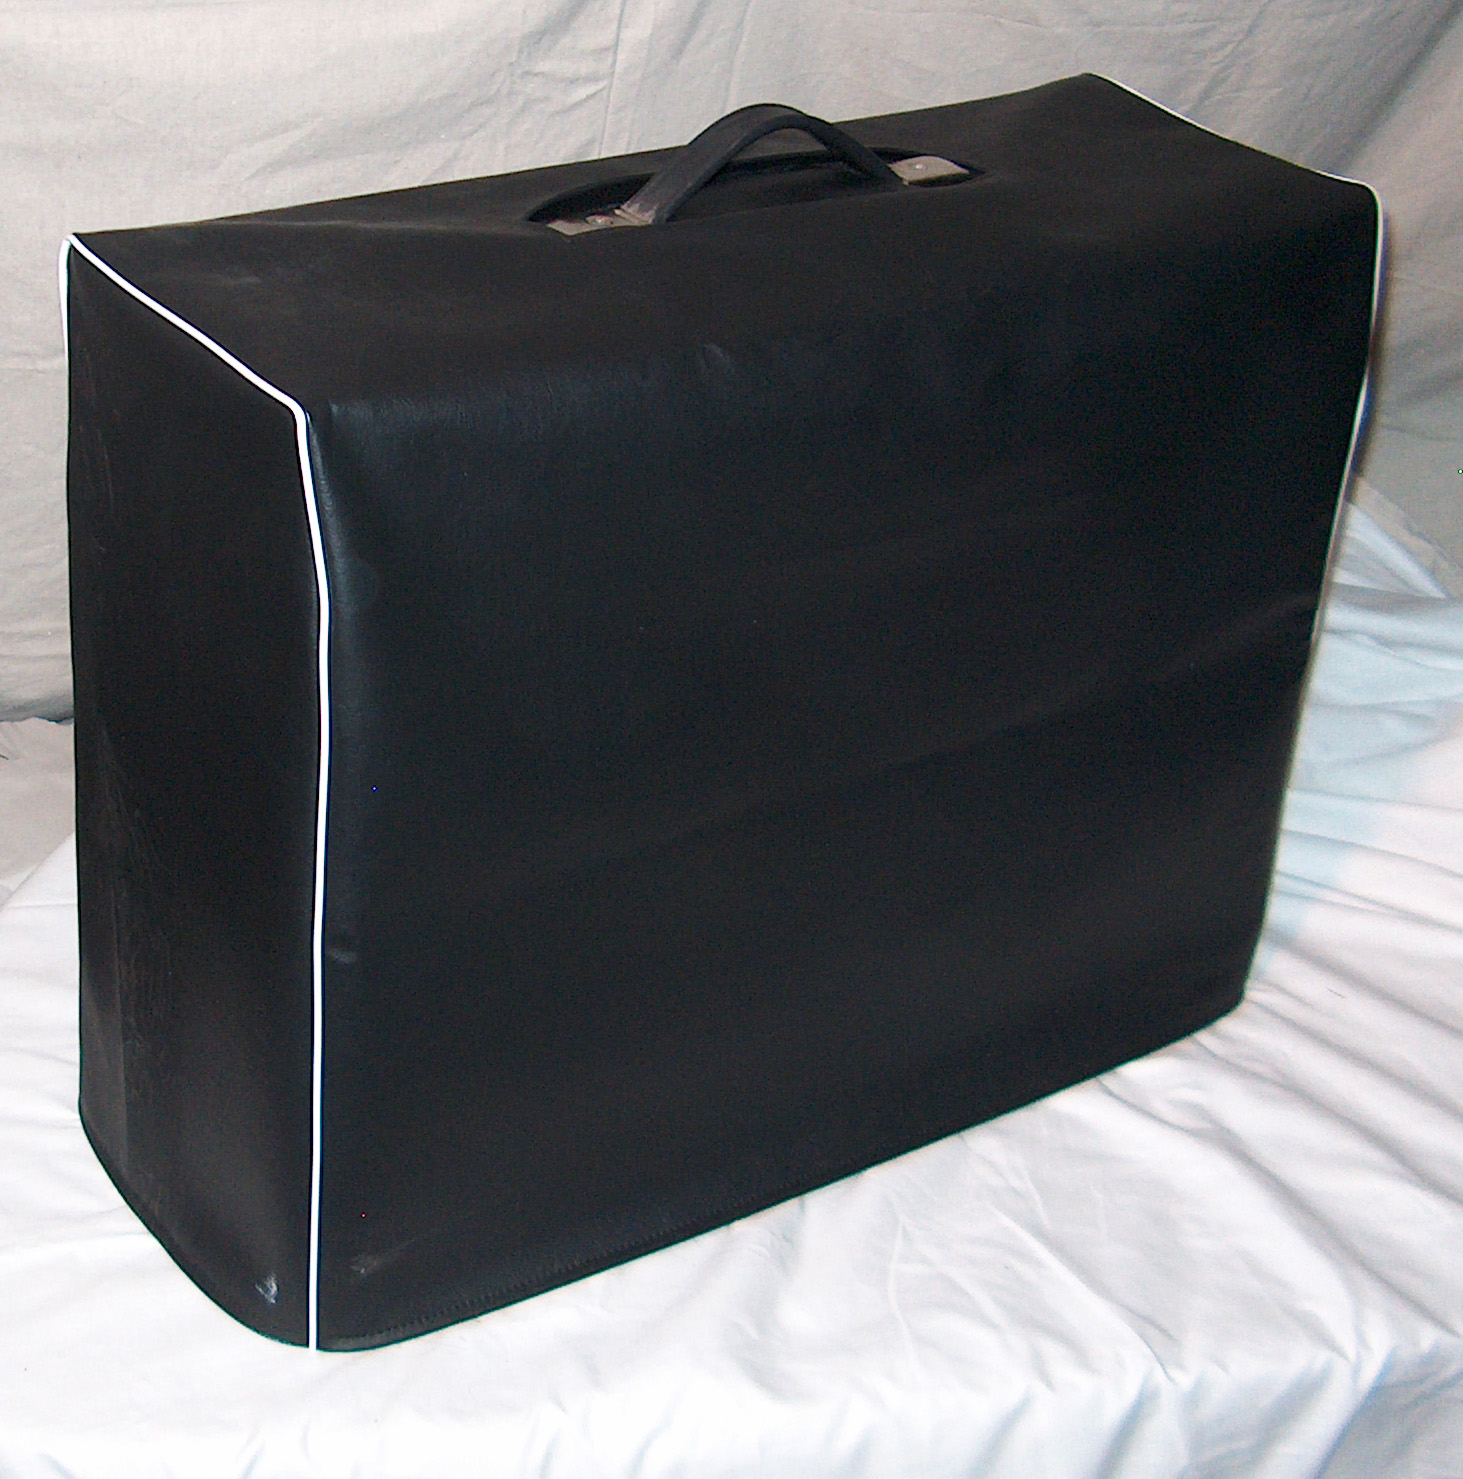 Example of black vinyl cover with white piping